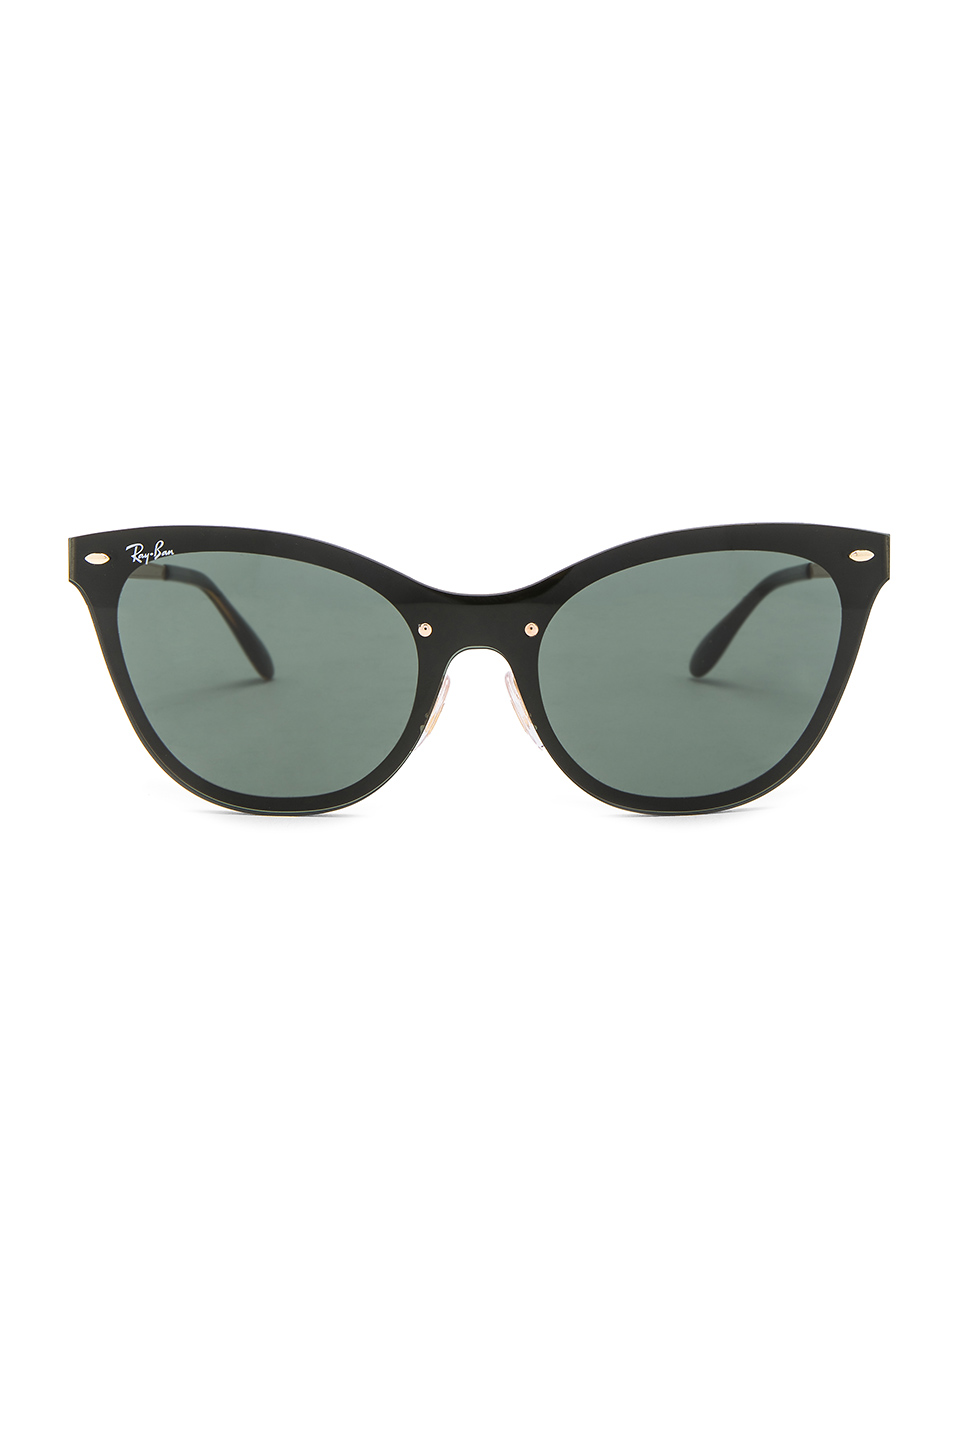 Ray-Ban Blaze Cats in Gold & Green Classic